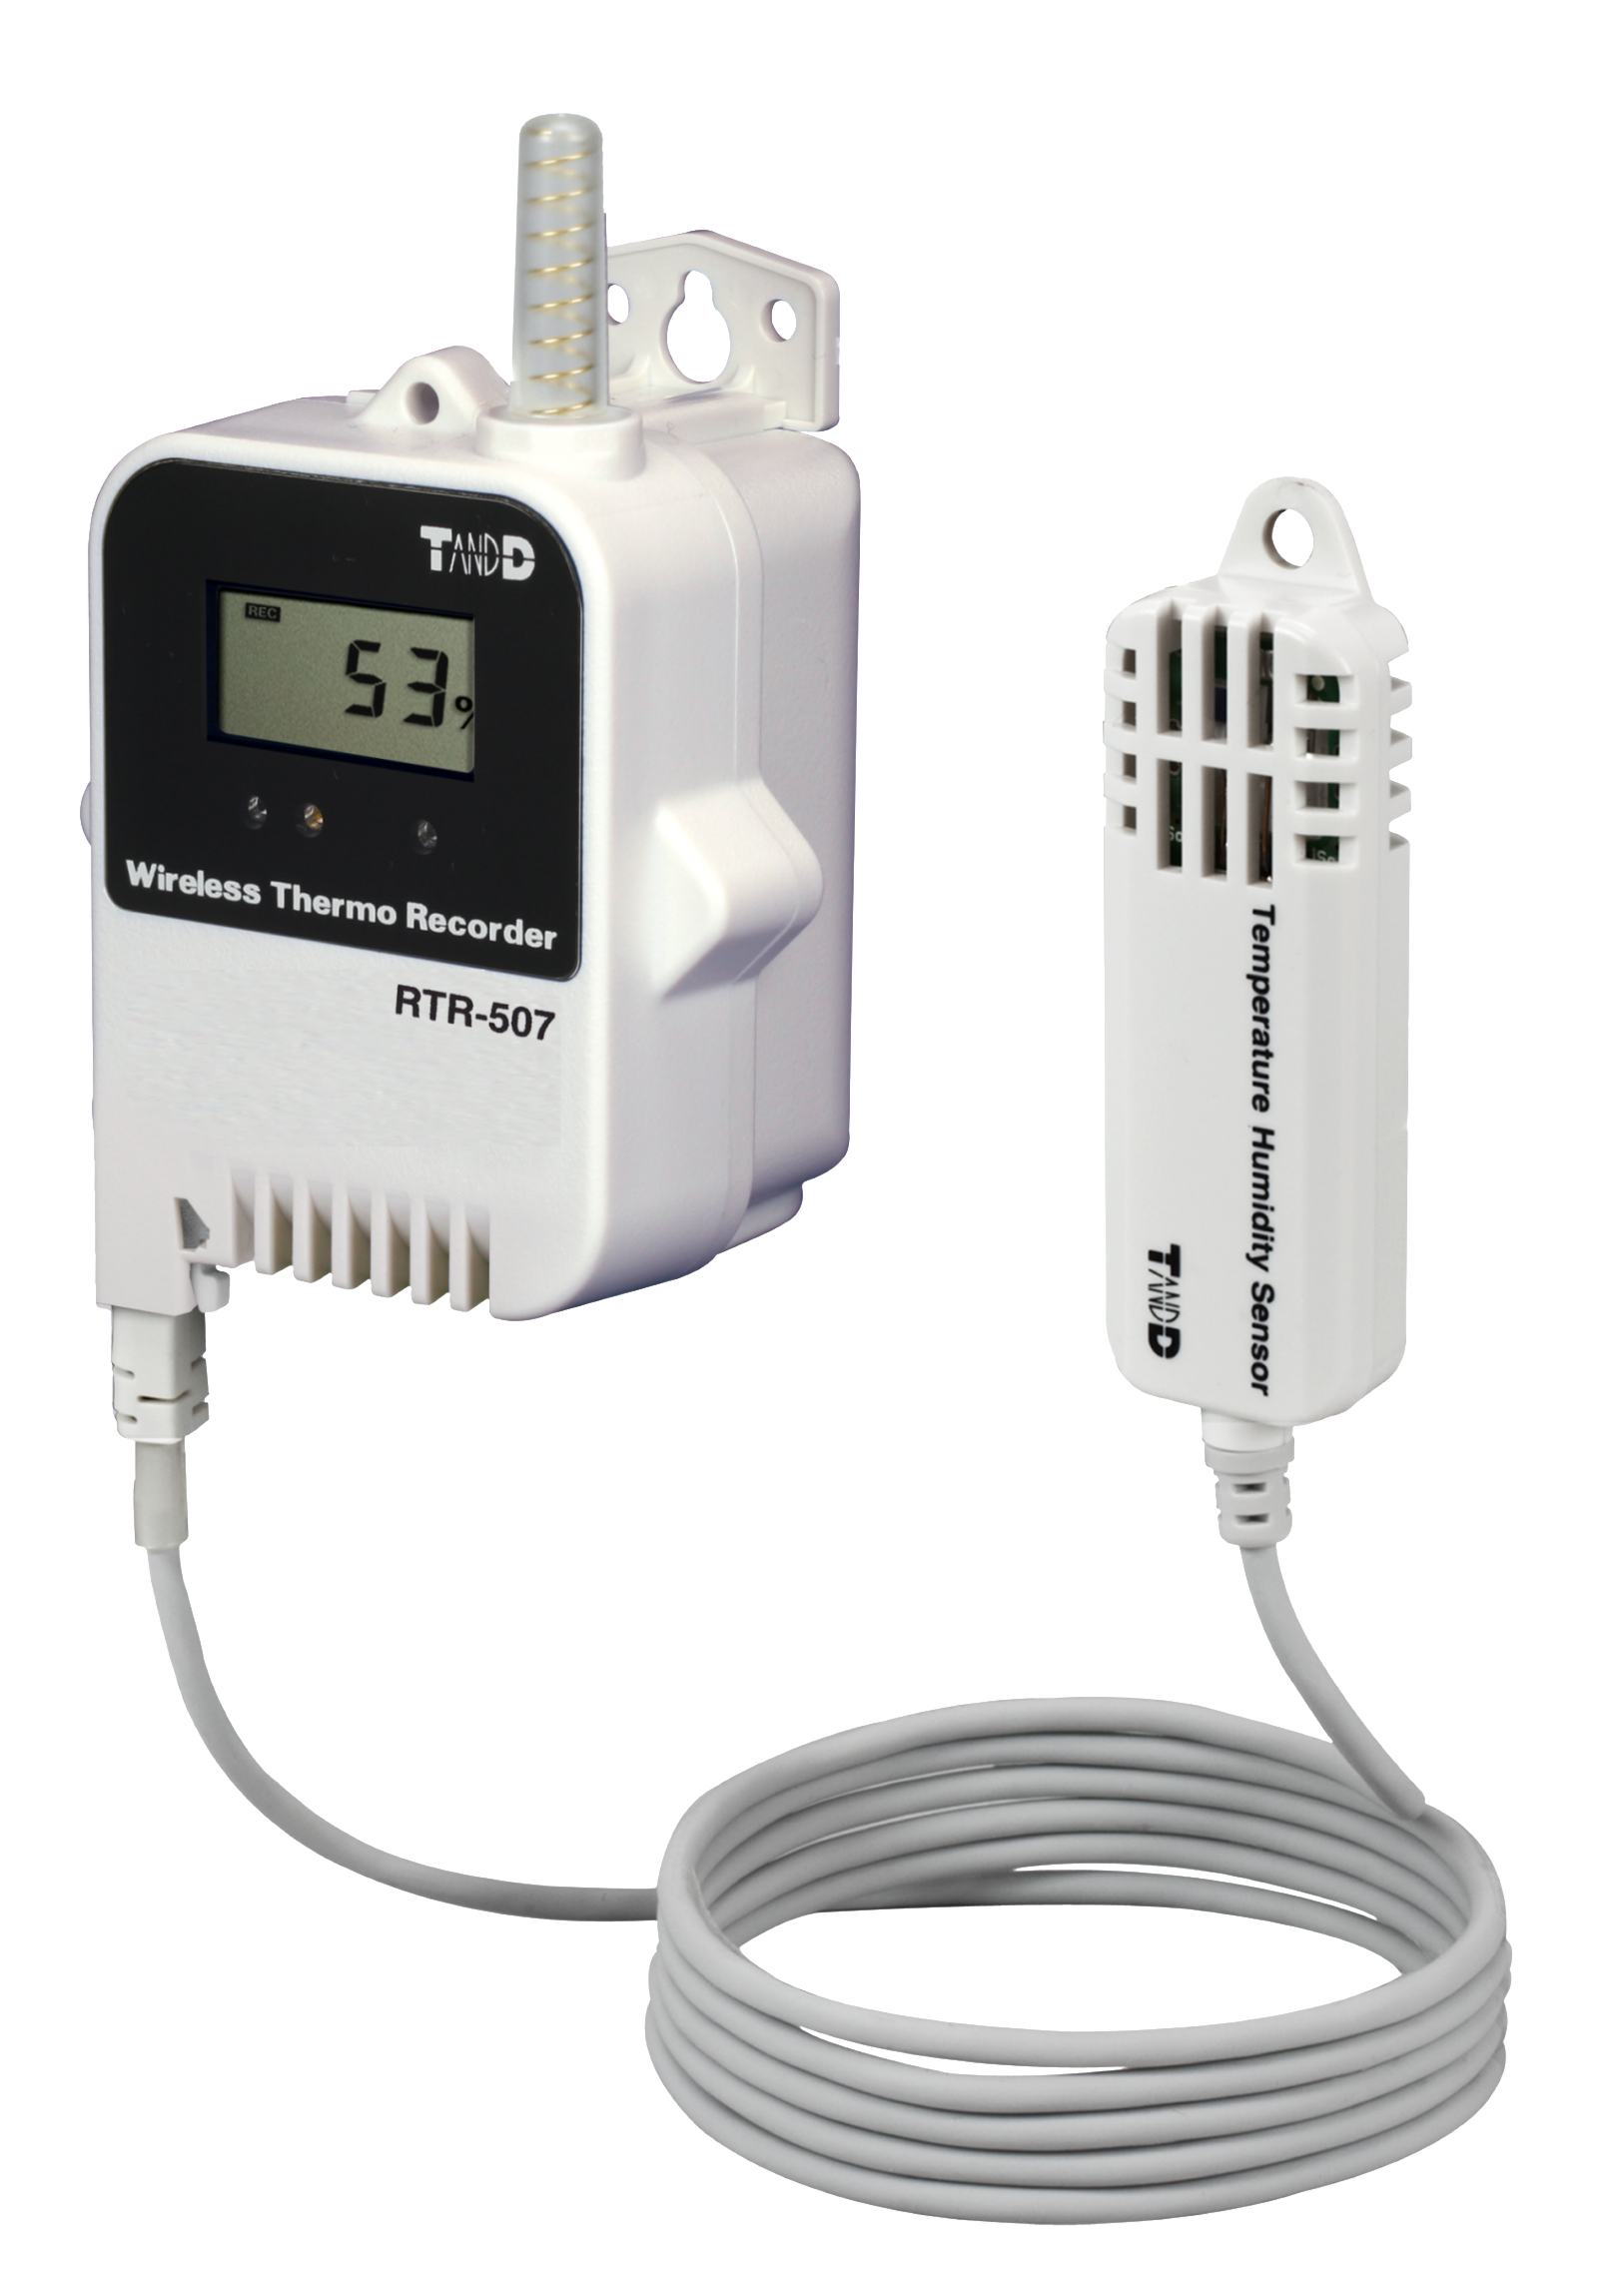 precision wireless data logger with long battery life